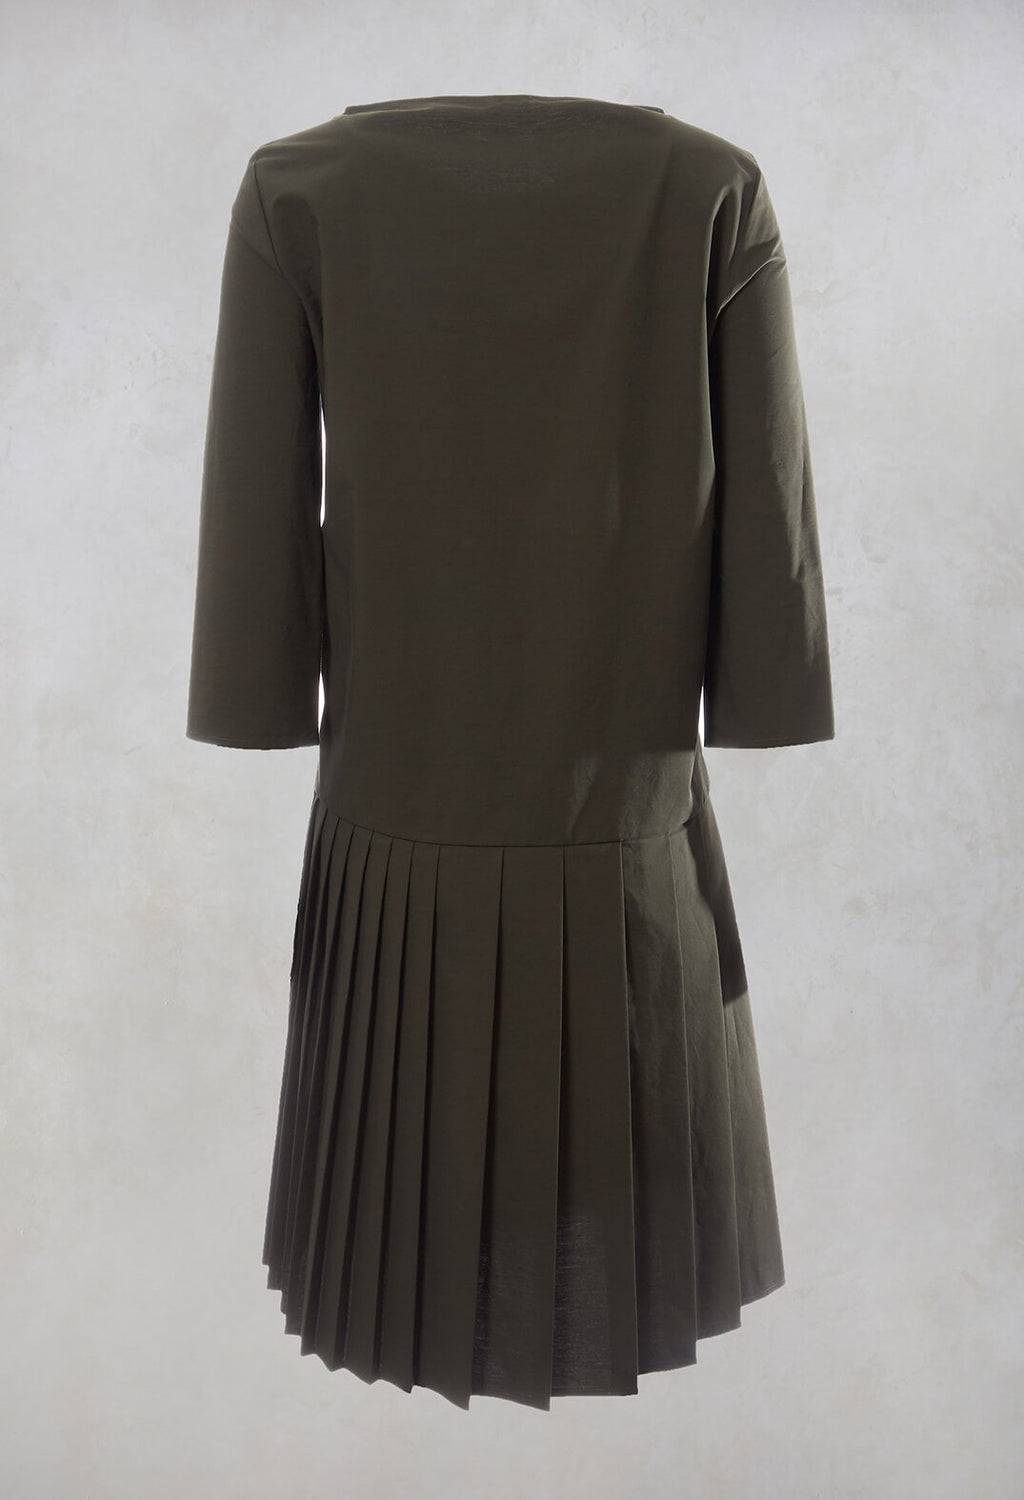 Pleated Shift Dress in Military Green